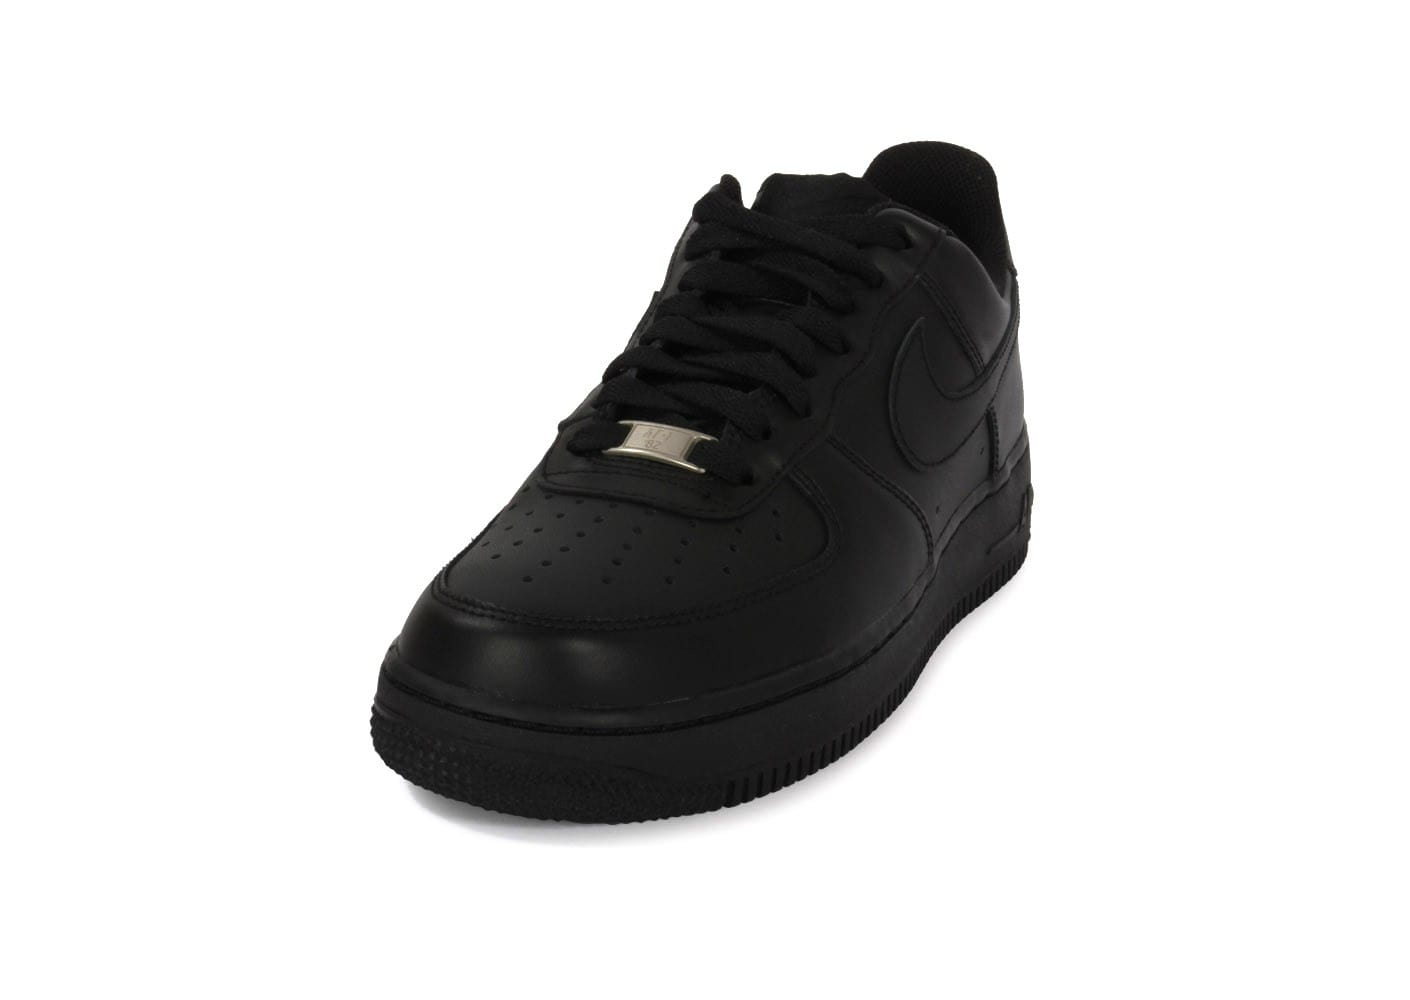 air force one noir homme nike chaussures gratuites. Black Bedroom Furniture Sets. Home Design Ideas